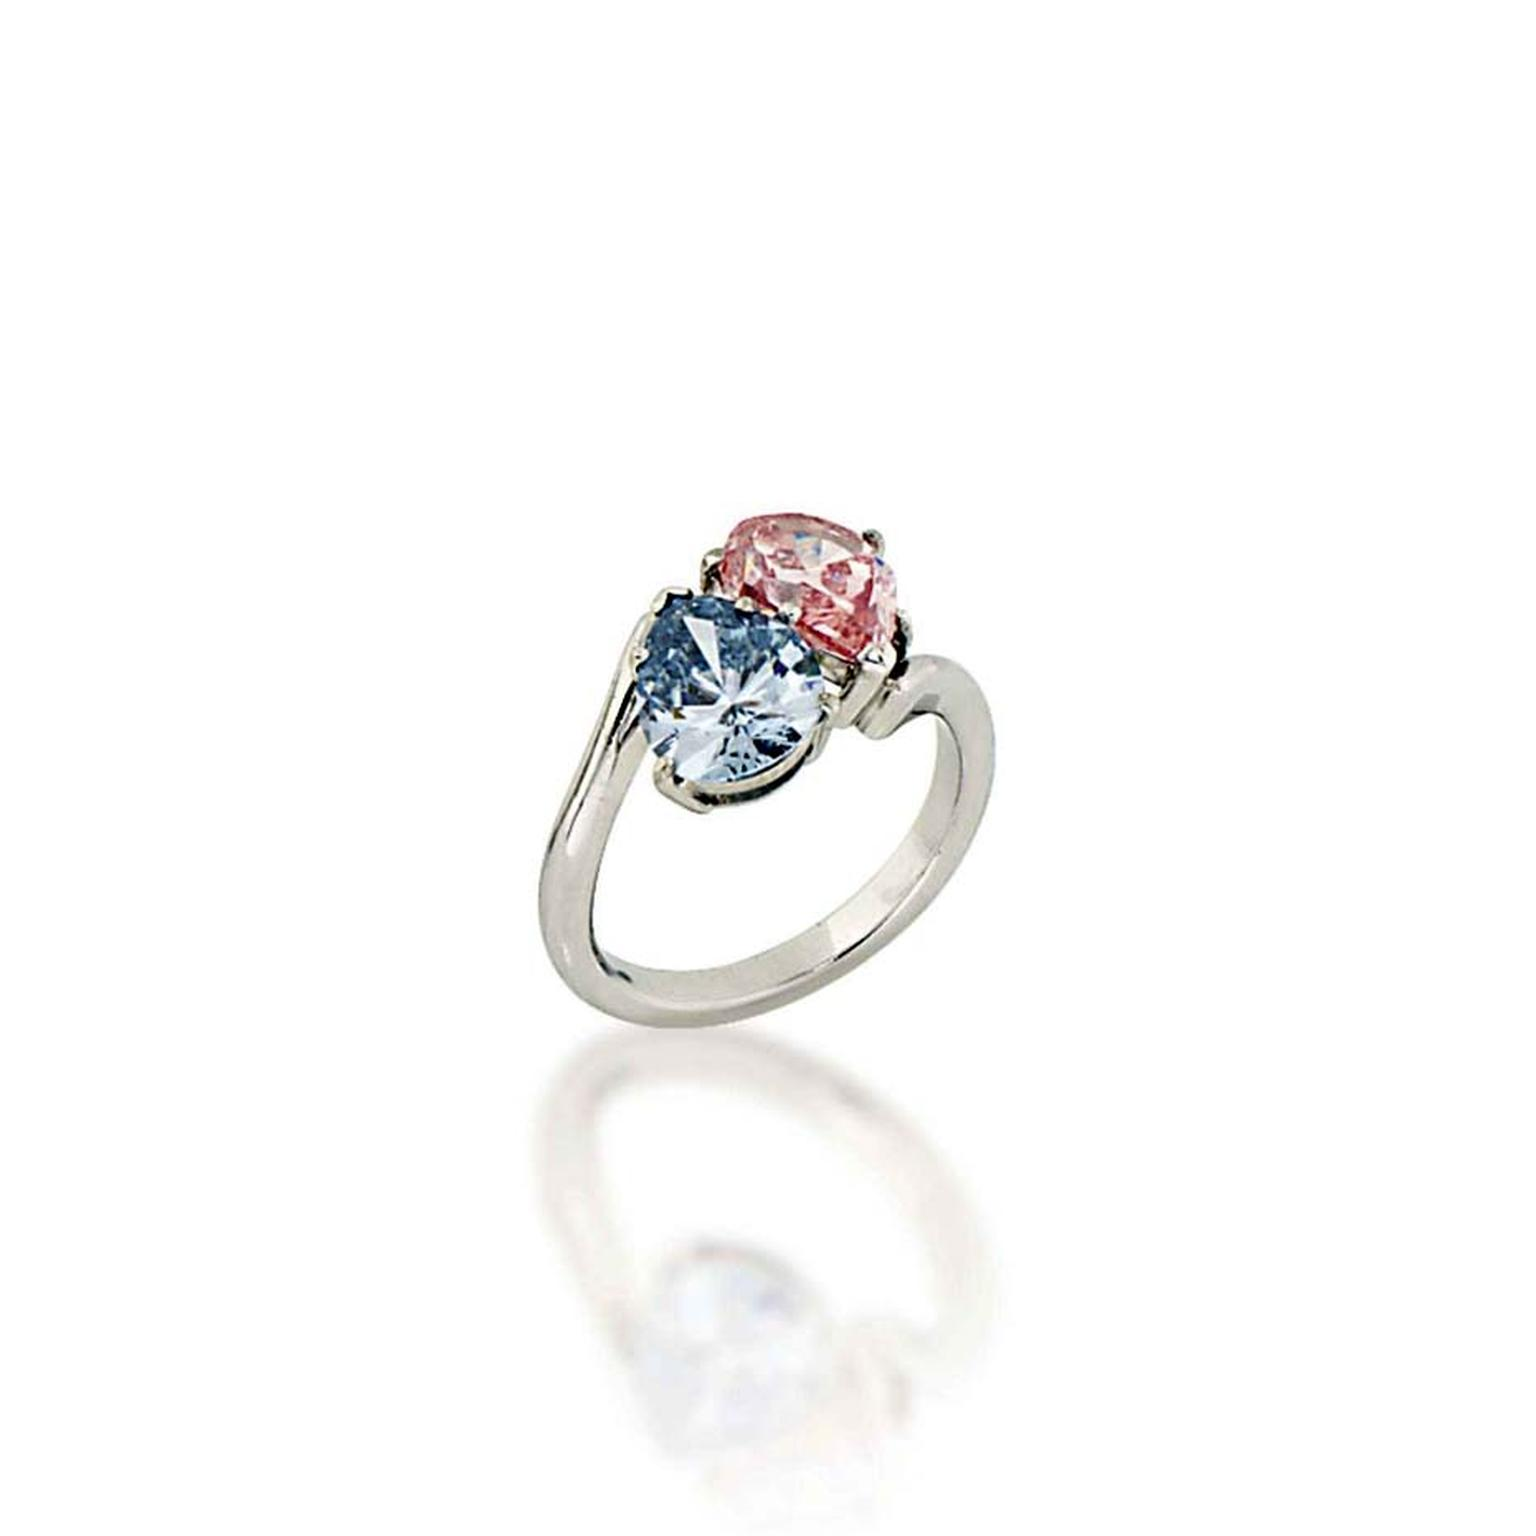 Another top lot at Christie's Important Jewels sale in London on 26 November 2014 was a 1.54ct Fancy Deep Blue diamond and 1.78ct Fancy Intense Pink diamond ring that sold for £752,500 (estimate: £300,000-500,000).